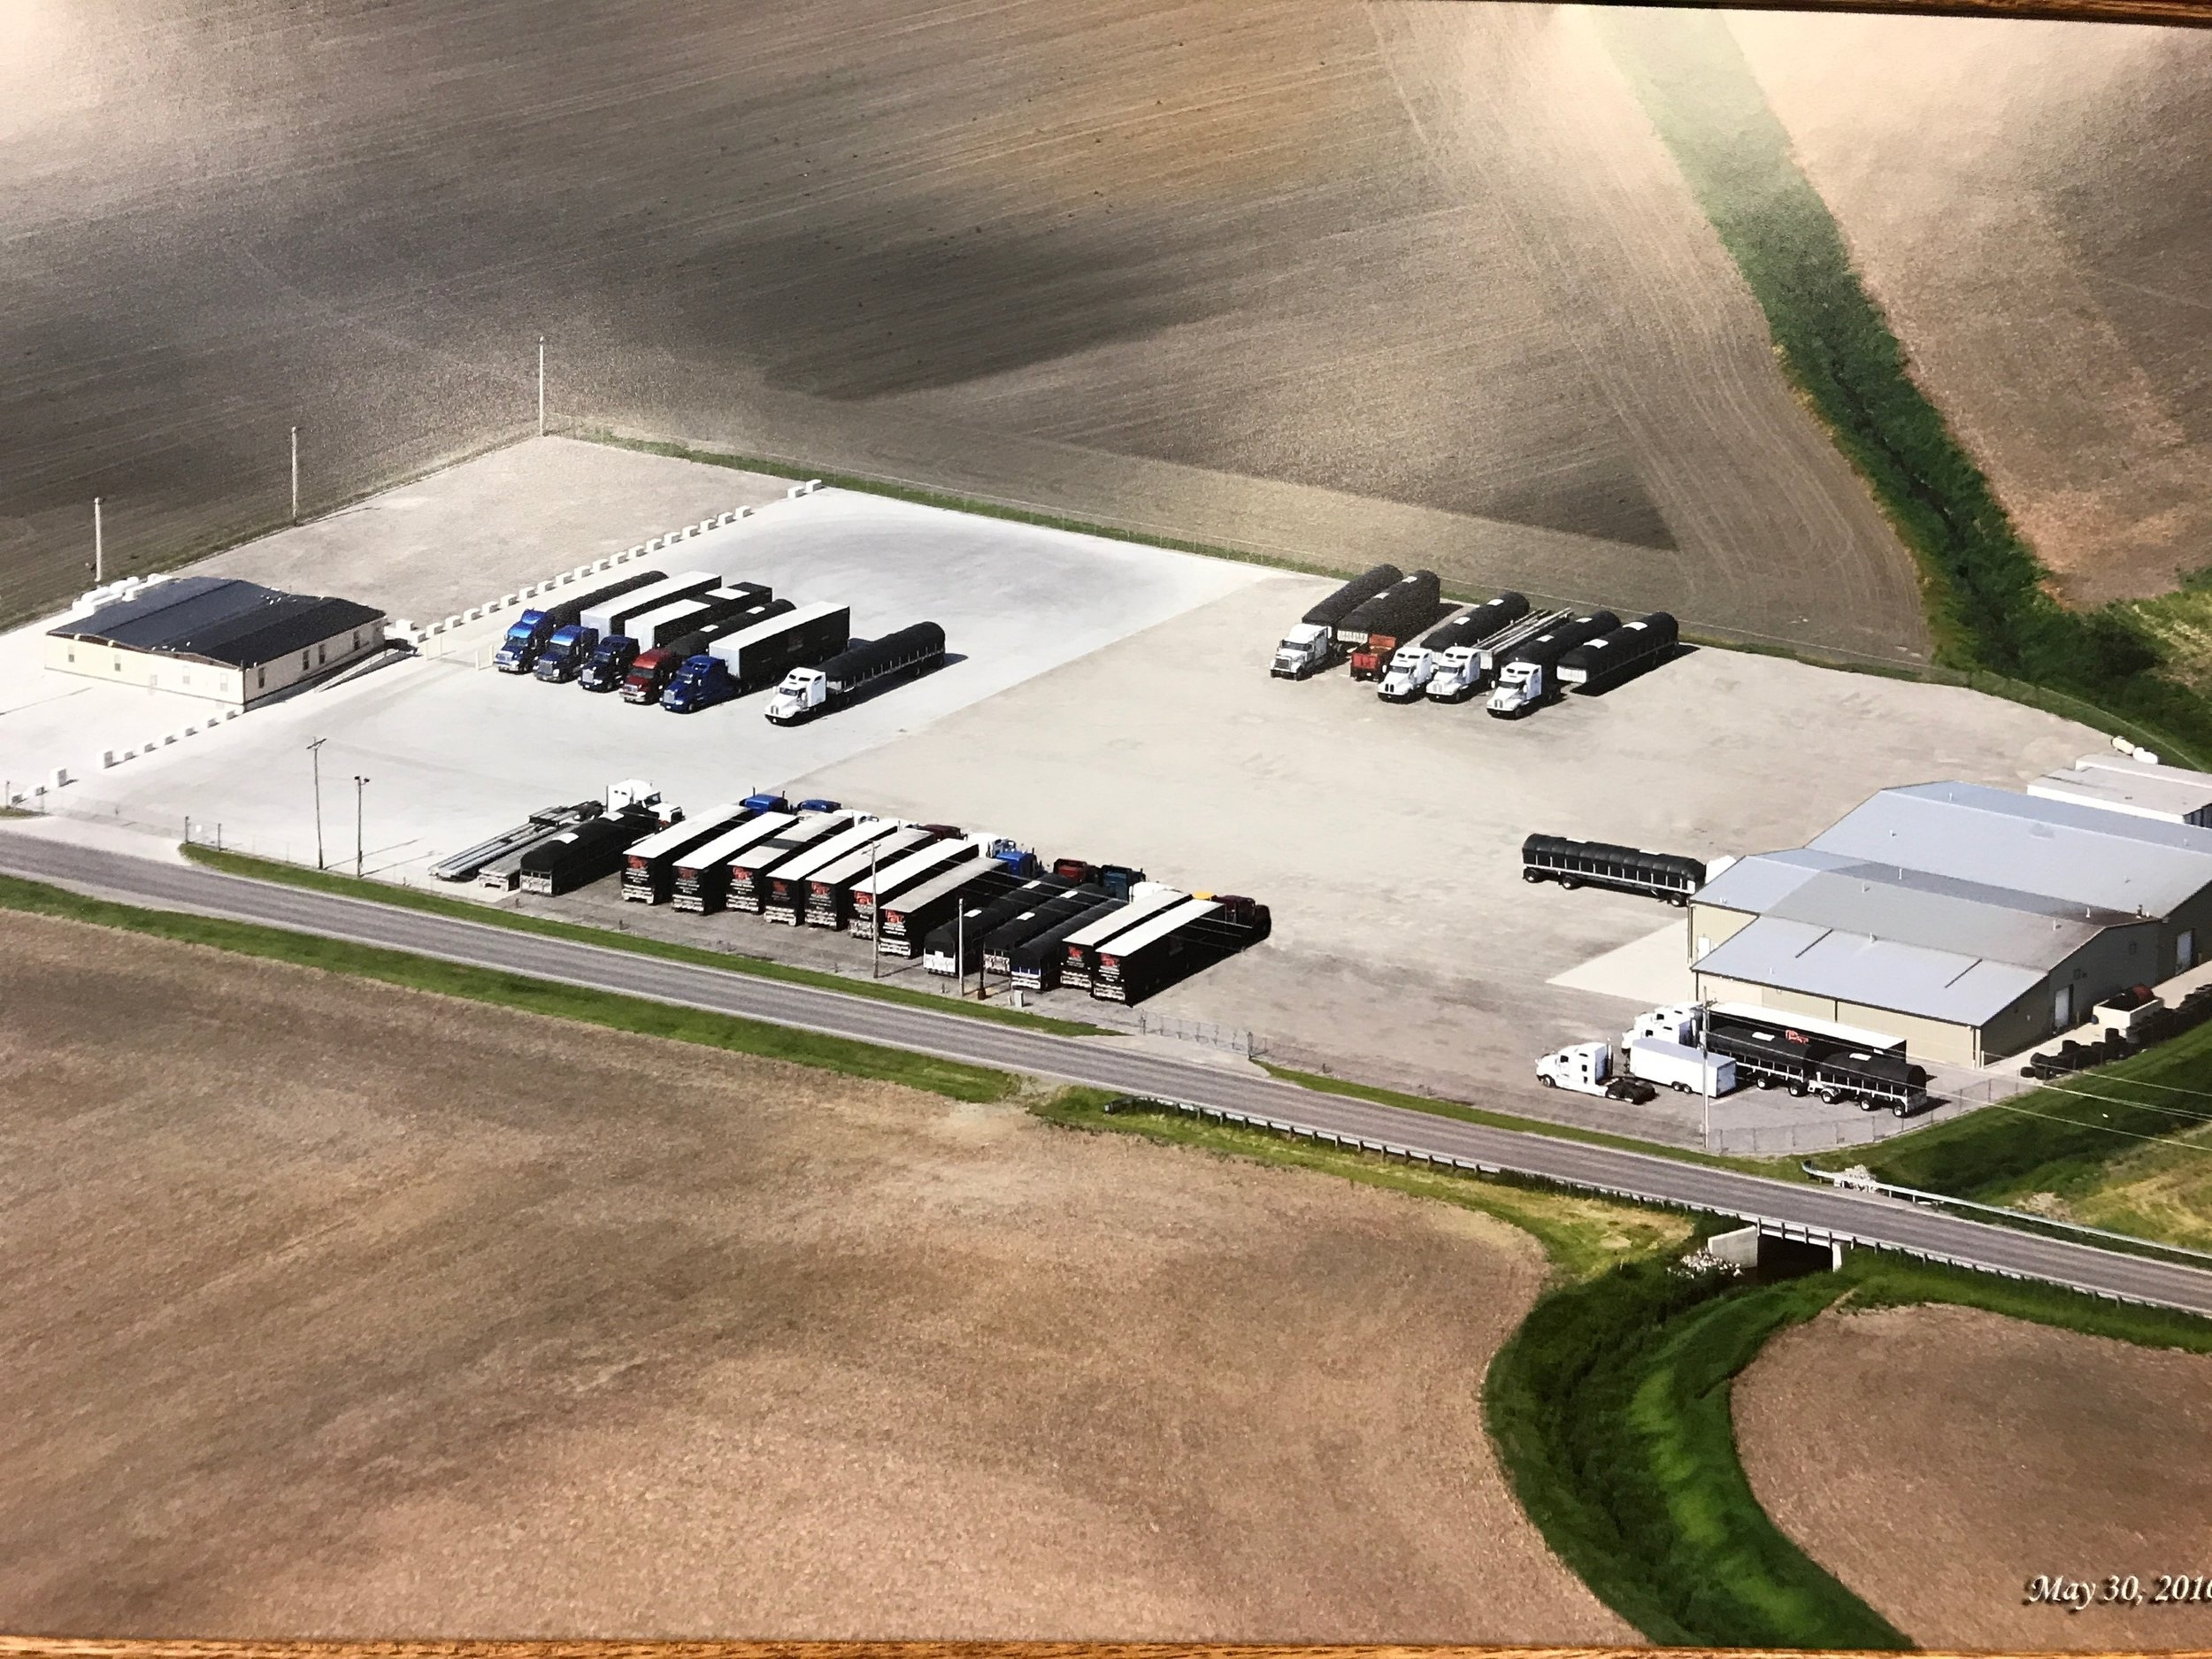 PGT Leipsic Terminal - Leipsic, OH is our home base of operations for drivers and owner operators alike. Secured parking, maintenance facility, axle scale, 24hr driver lounge and shower room, and free WIFI. 6302 Road 5, Leipsic, OH 45856 419-943-3437 419-943-3438 fax leipsic@pgttrucking.com